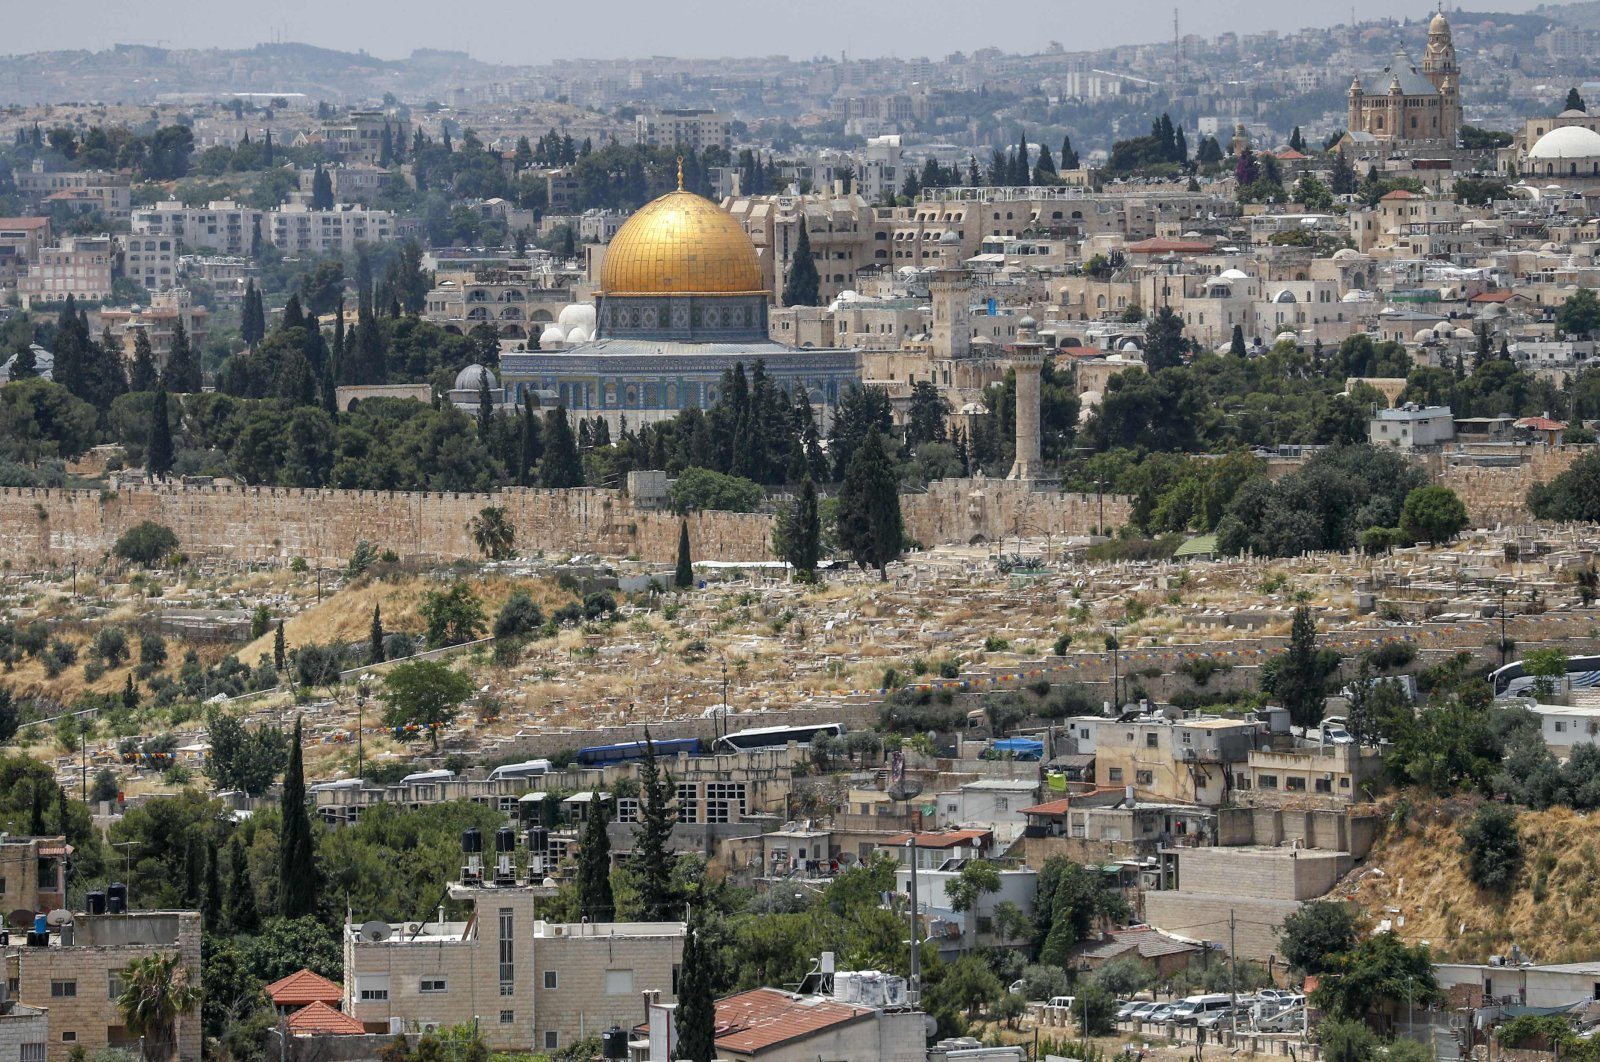 This June 3, 2020, picture shows a view of the Palestinian neighborhood of Wadi al-Joz (below) in occupied east Jerusalem, with a backdrop of the Dome of the Rock Mosque in Jerusalem's old city. Palestinian business owners in occupied east Jerusalem are worried they will be forced to shut up shop by Israeli authorities over plans to build a vast high-tech hub in their neighborhood. (Photo by AHMAD GHARABLI/AFP)